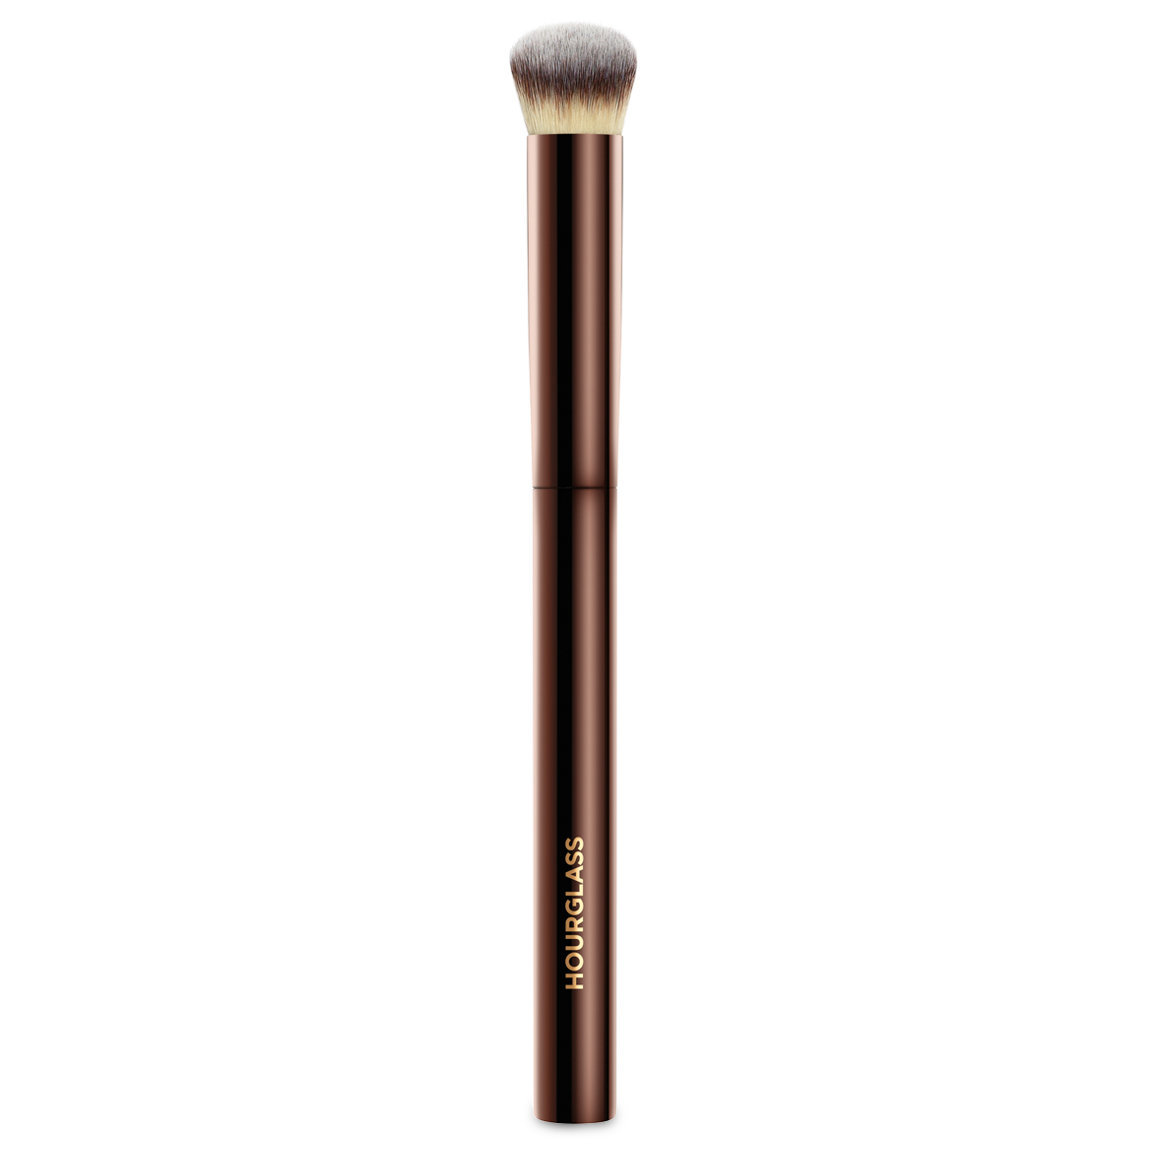 Hourglass Vanish Seamless Finish Concealer Brush alternative view 1 - product swatch.